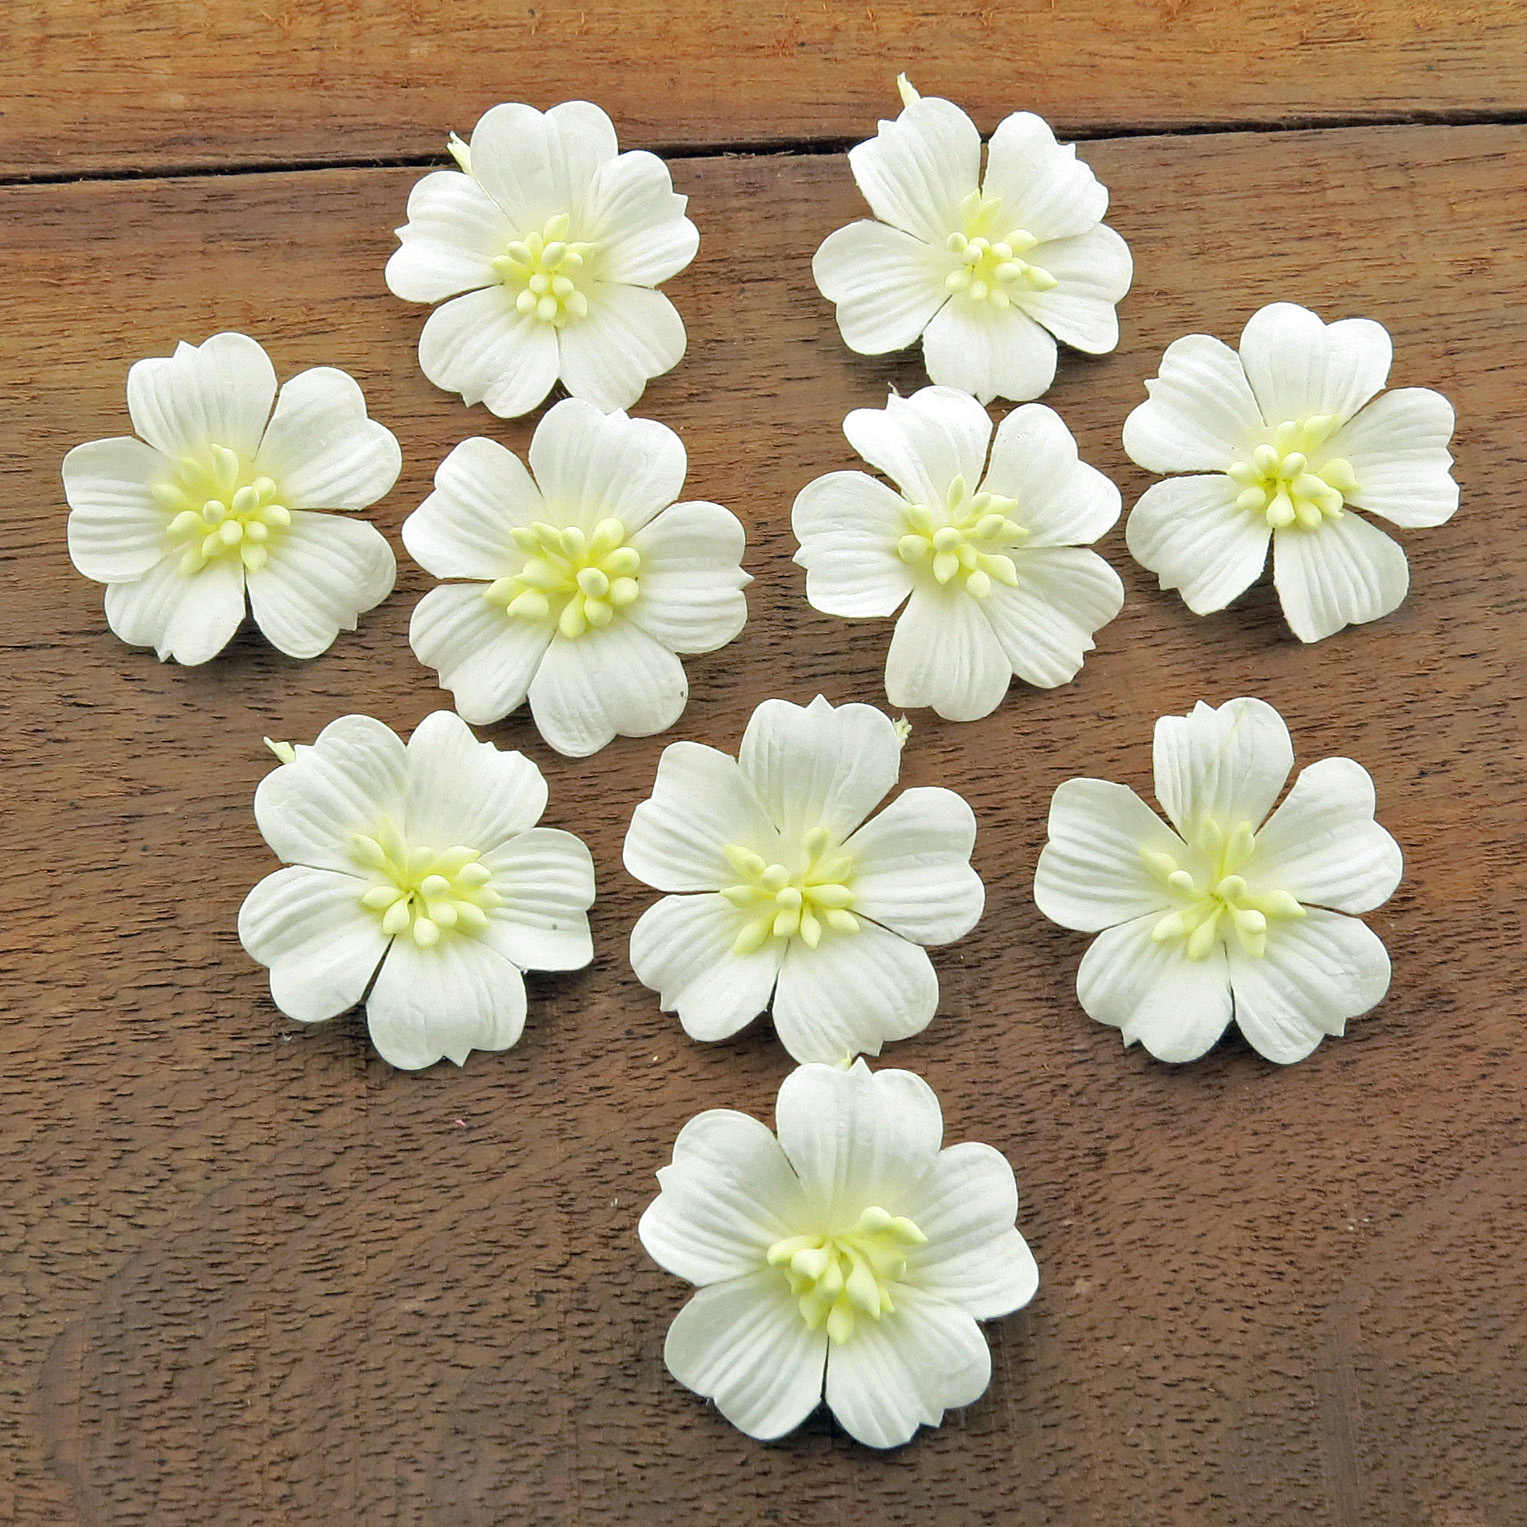 WHITE COTTON STEM MULBERRY PAPER FLOWERS - SET B